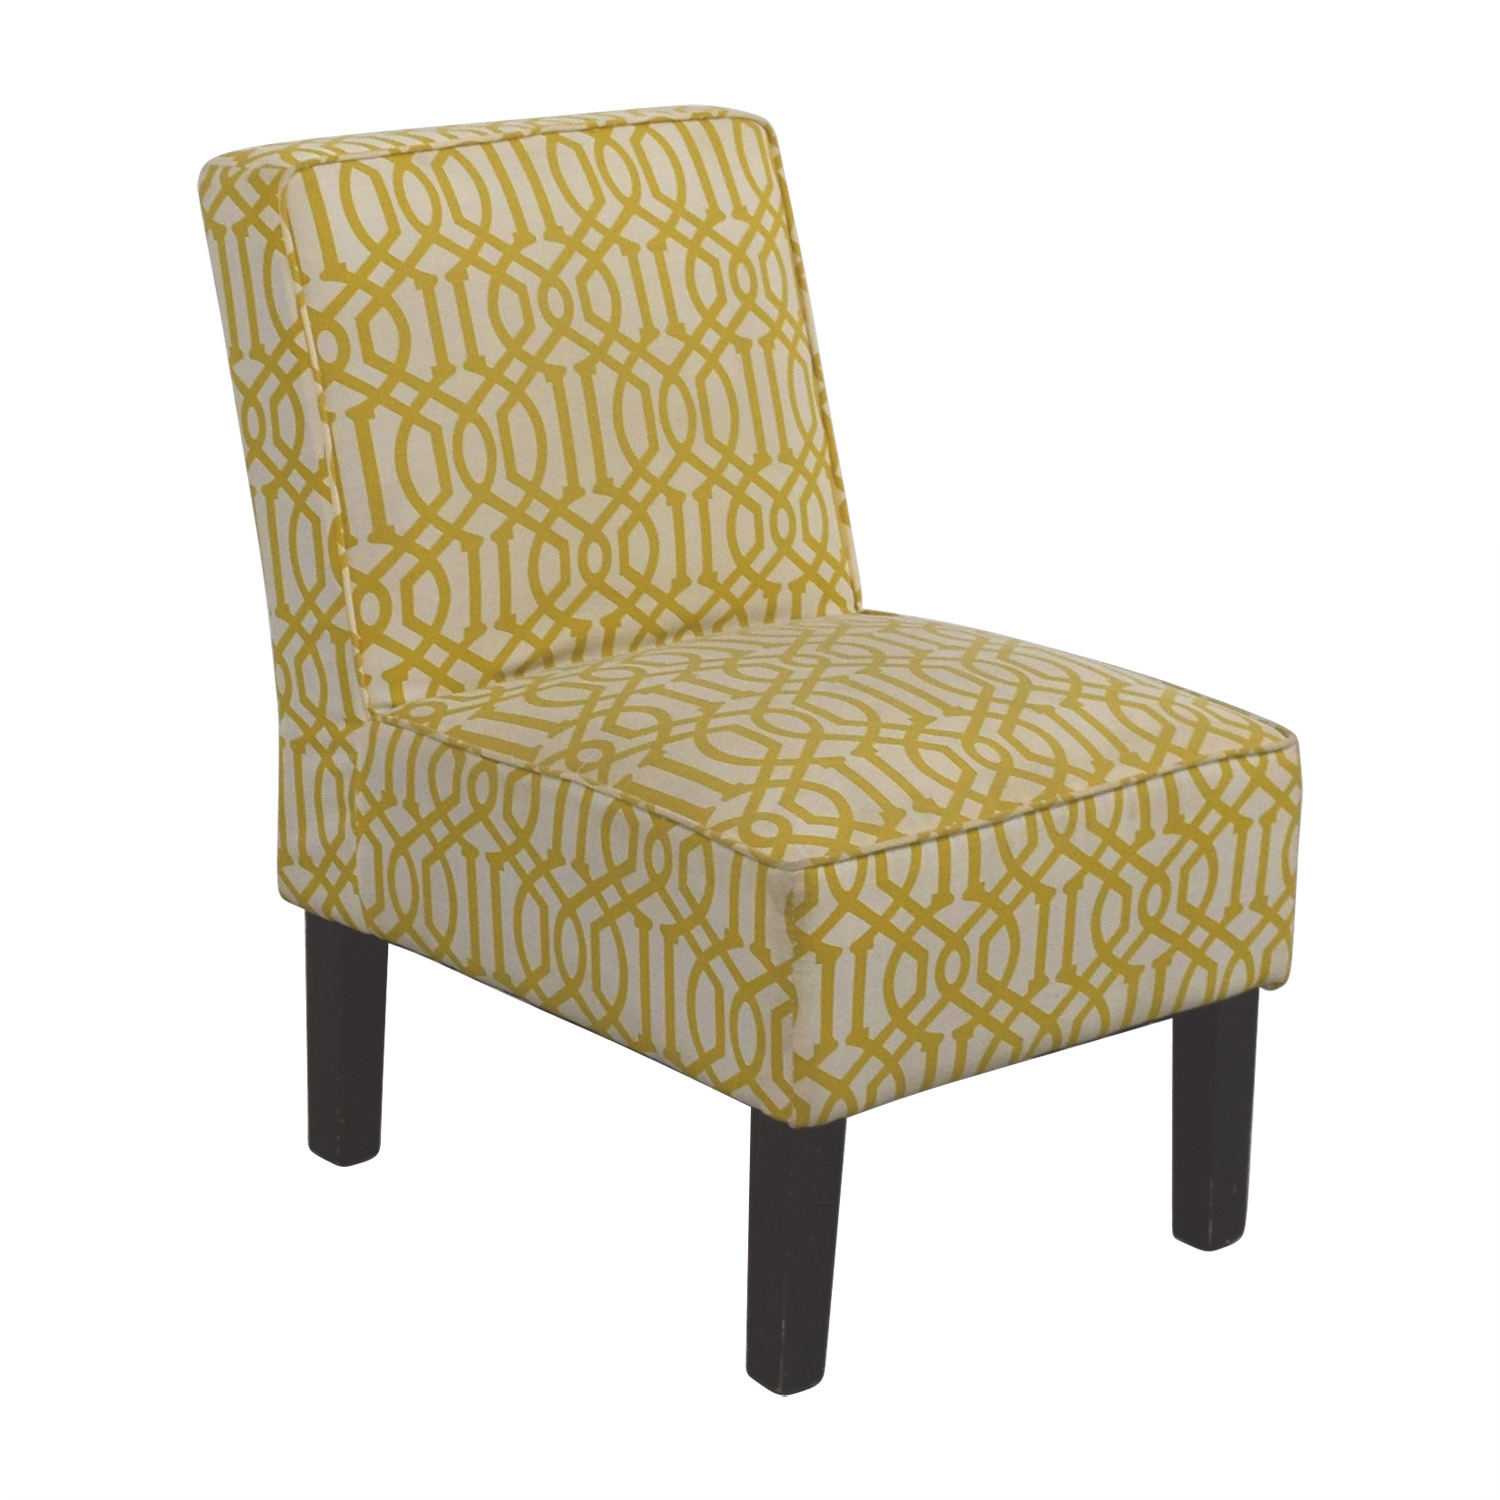 85 OFF  Yellow and White Accent Chair  Chairs